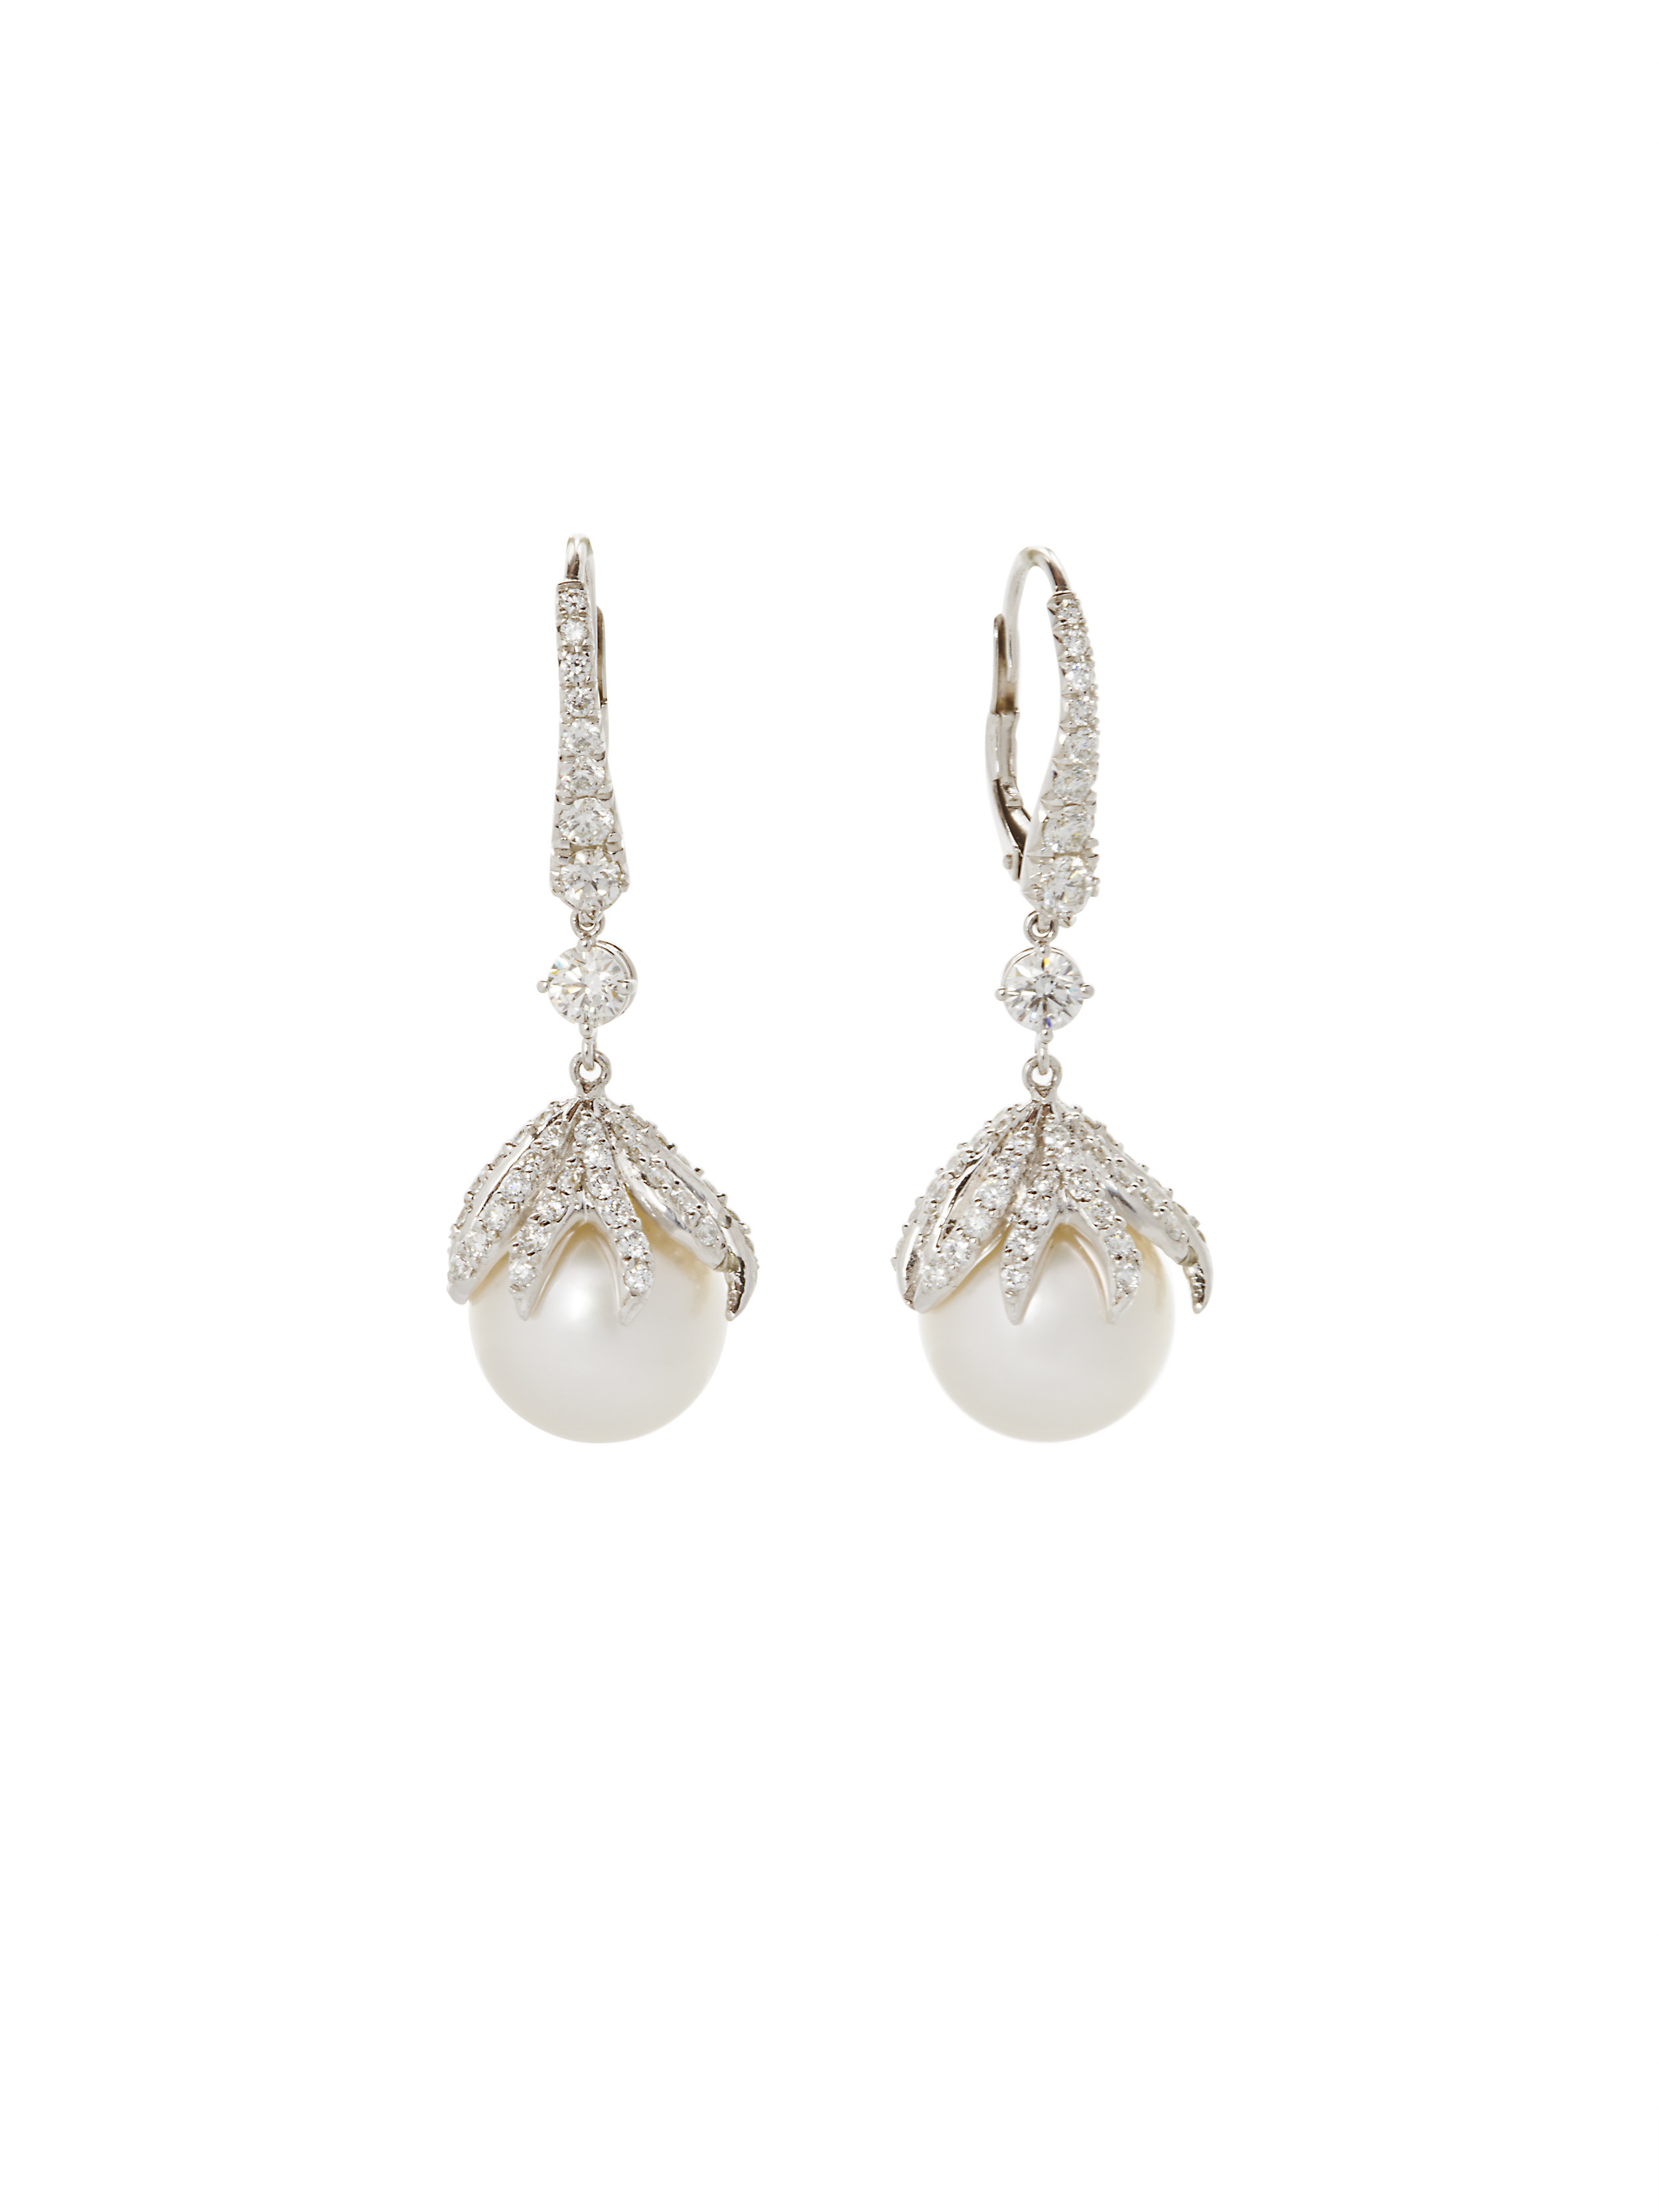 ALVA EARRINGS    18K GOLD TAHITIAN PEARLS 2.71 CT OF DIAMONDS      Contact for inquiry